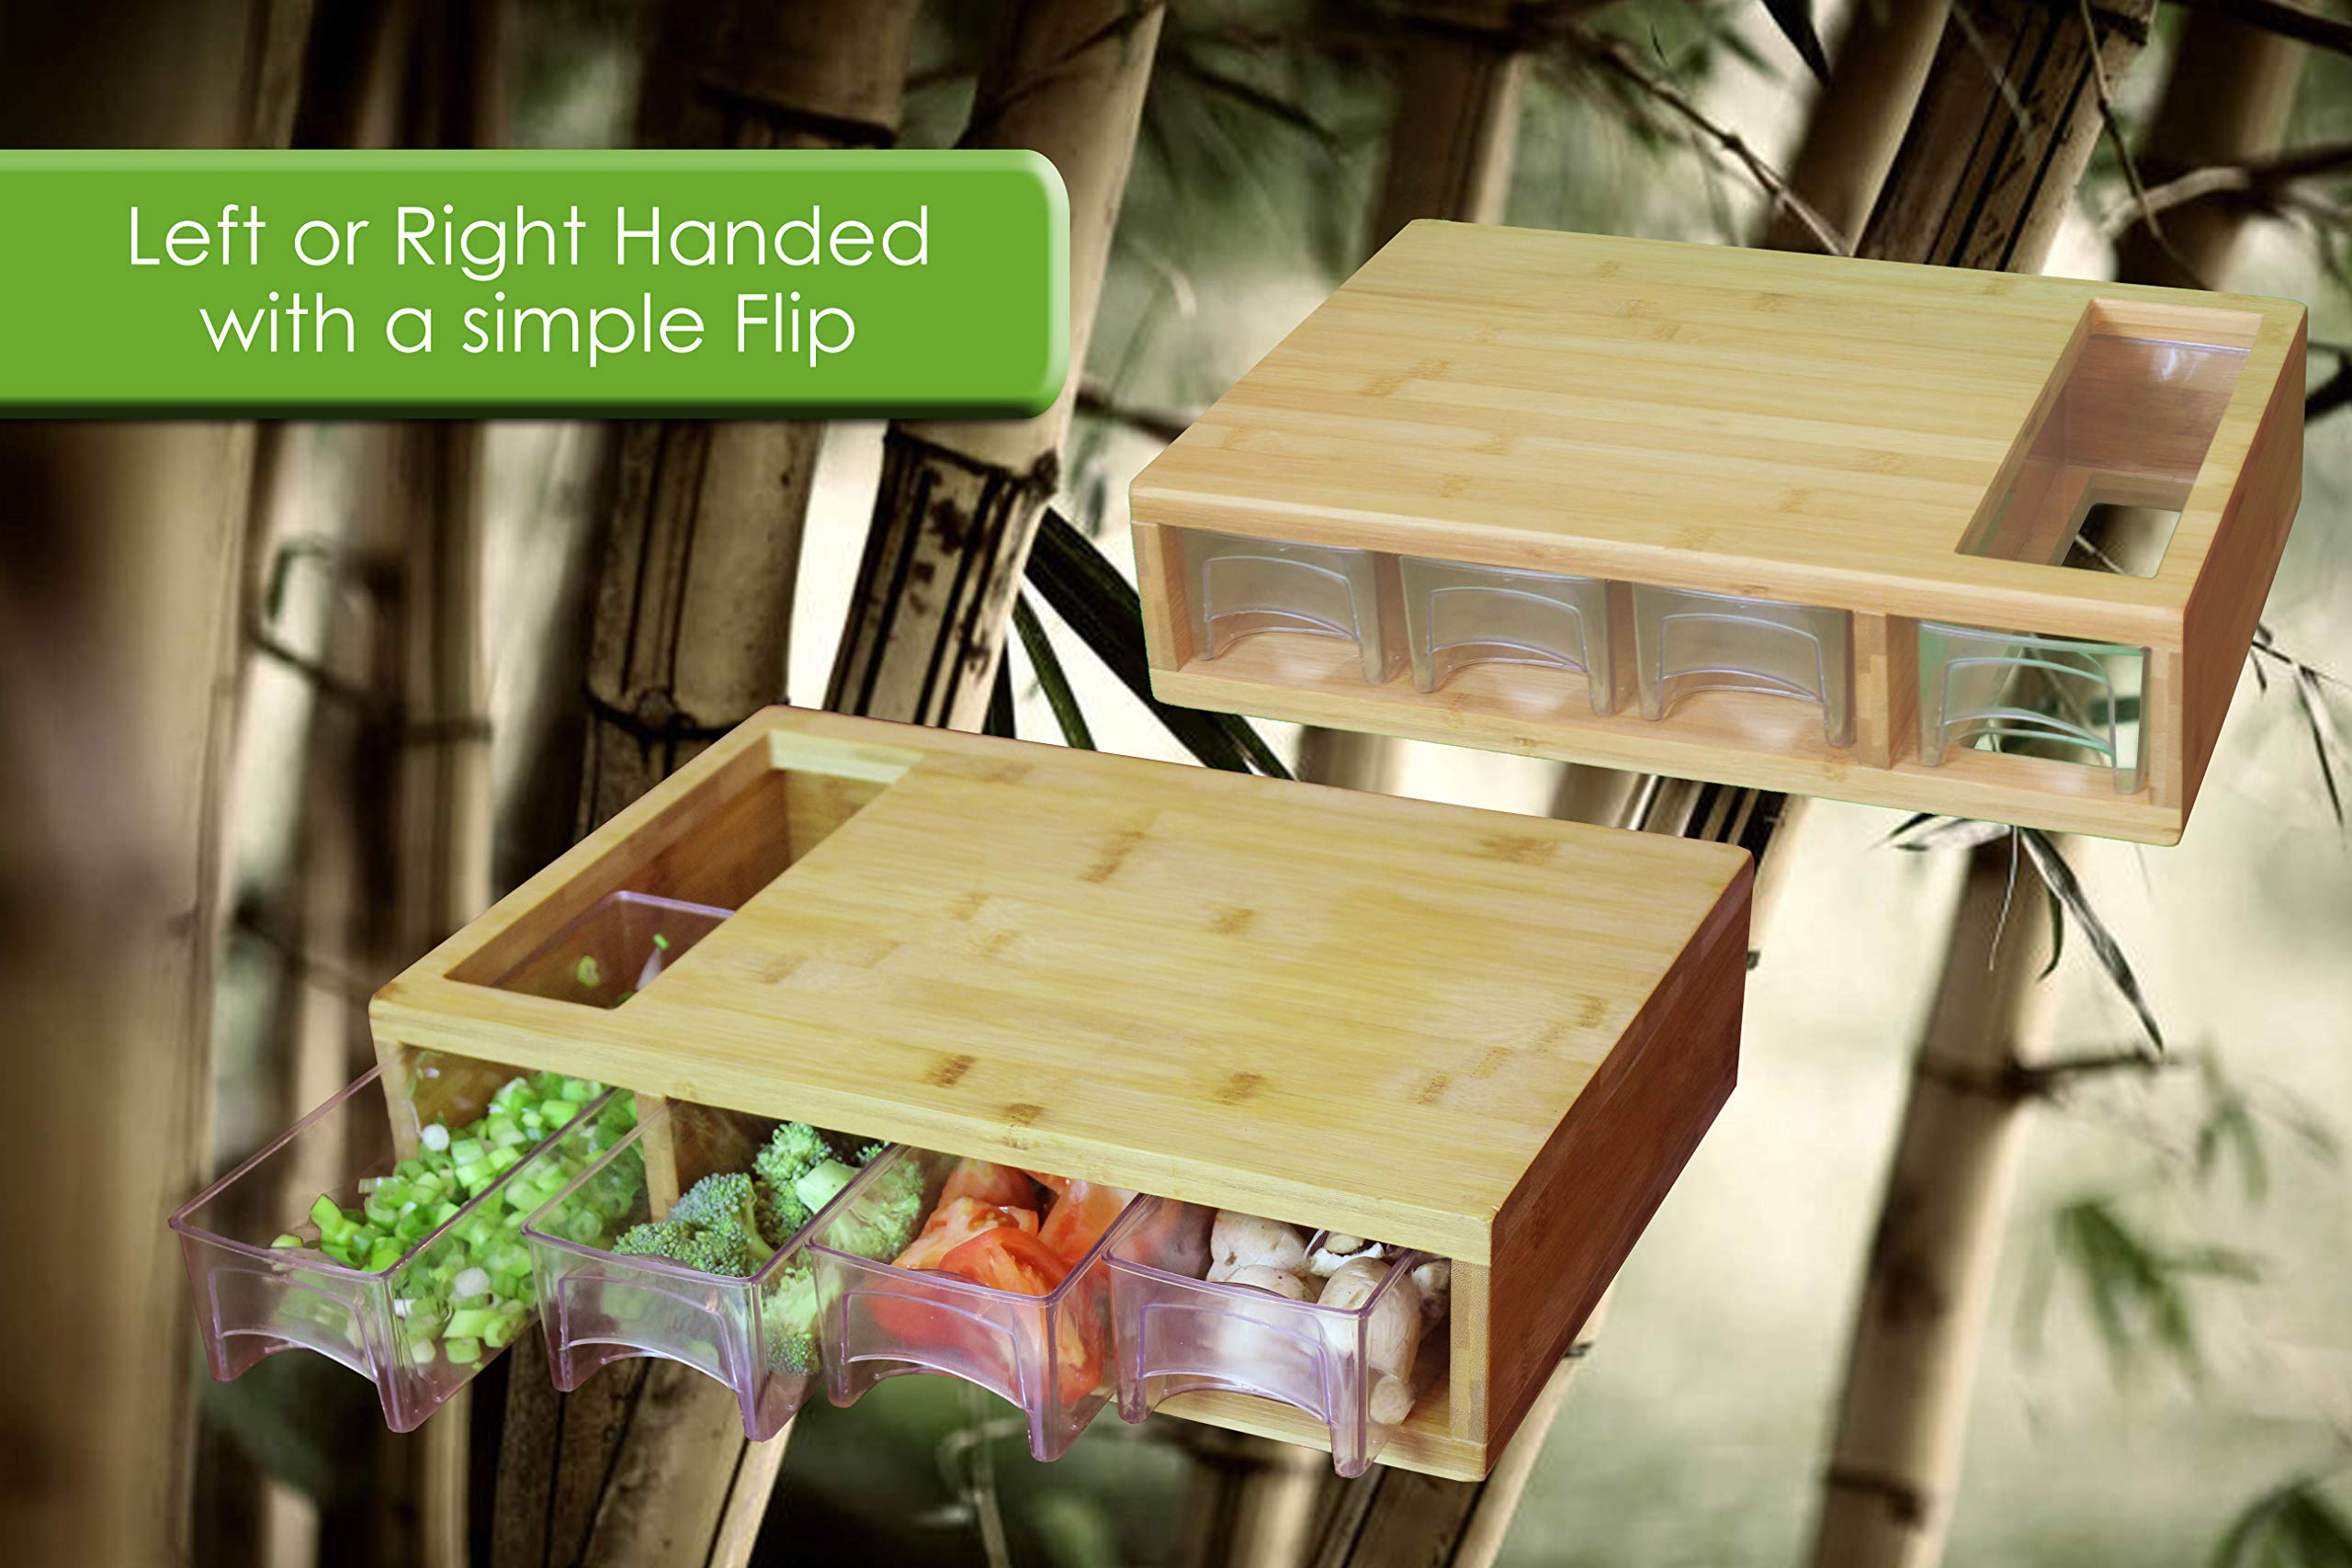 Large Bamboo Cutting Board with Trays/Draws - Wood Butcher Block with 4 Drawers & Opening For Meat, Fruits, Veggies, Bread, Cheese – Naturally Antimicrobial – Make Meal Prep Easy by Simpli Better (Image #4)